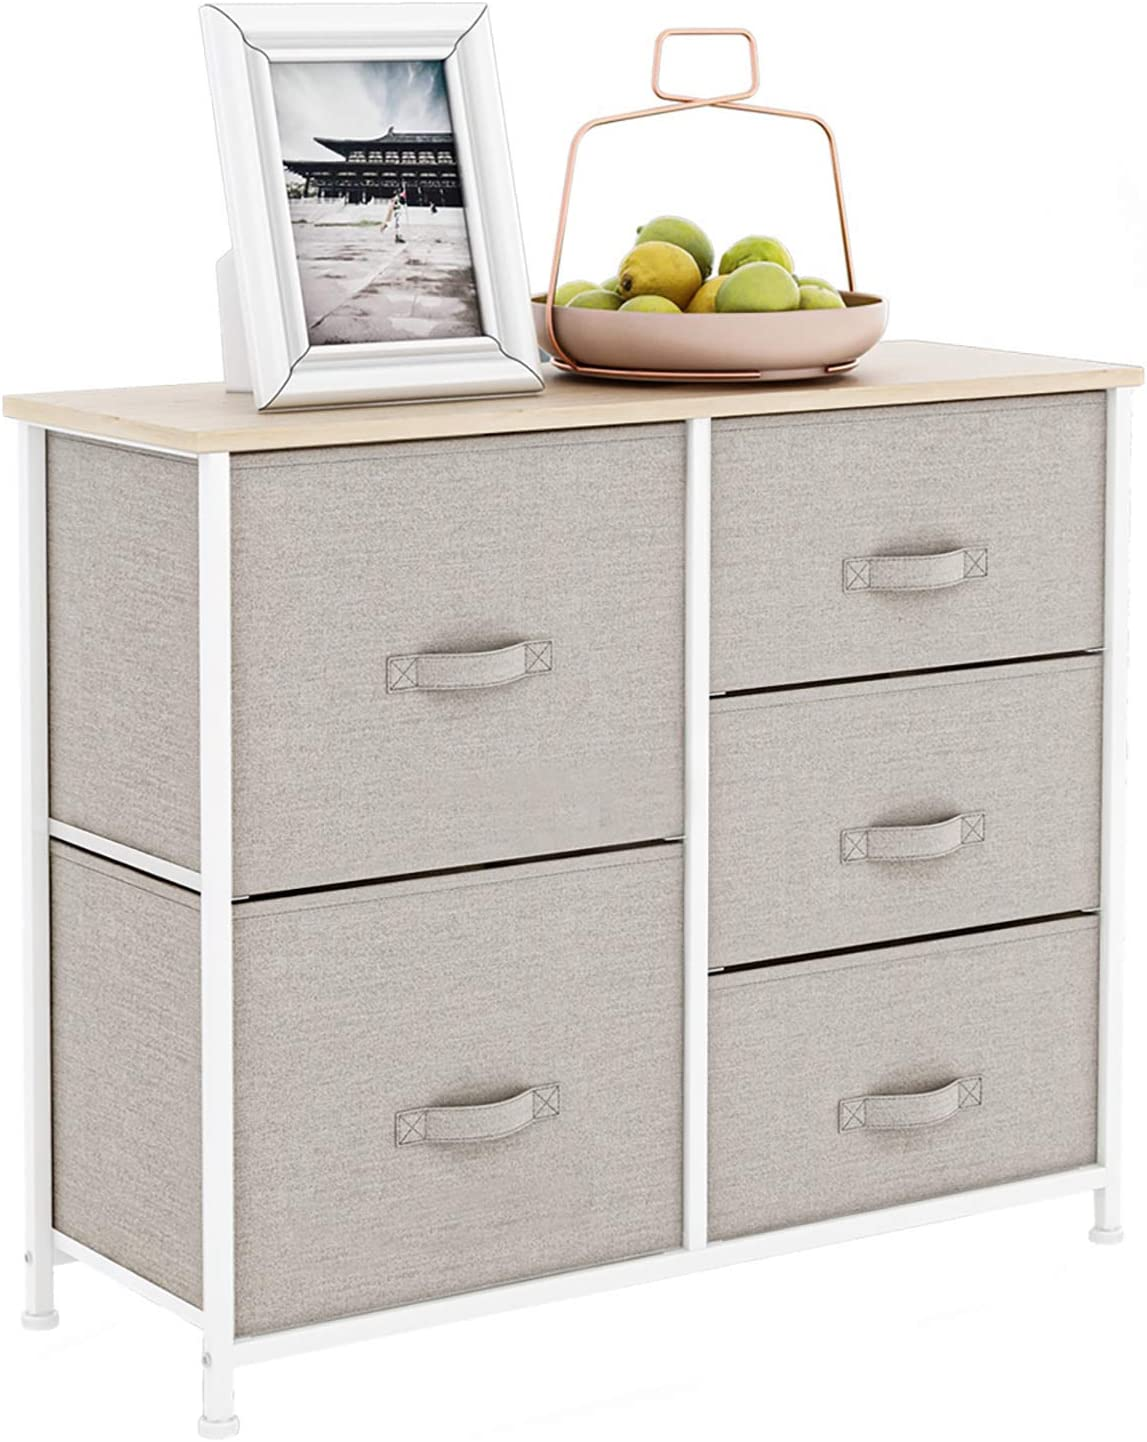 Dresser with 5 Drawers, Fabric Storage Tower, Chest Drawer for Bedroom, Living Room, Closets & Nursery - Organizer Unit with Sturdy Steel Frame, Easy Pull Fabric Bins, Wooden Top - Light Grey